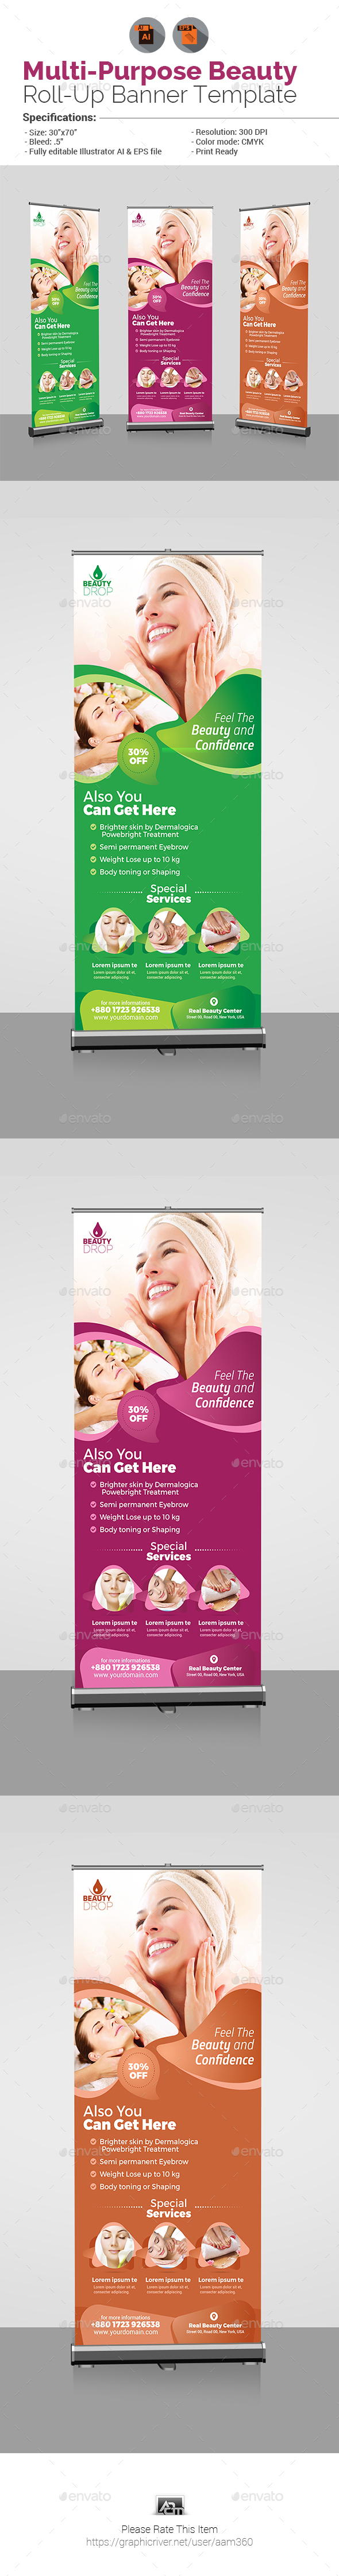 Multi-Purpose Beauty Roll-Up Banner - Signage Print Templates